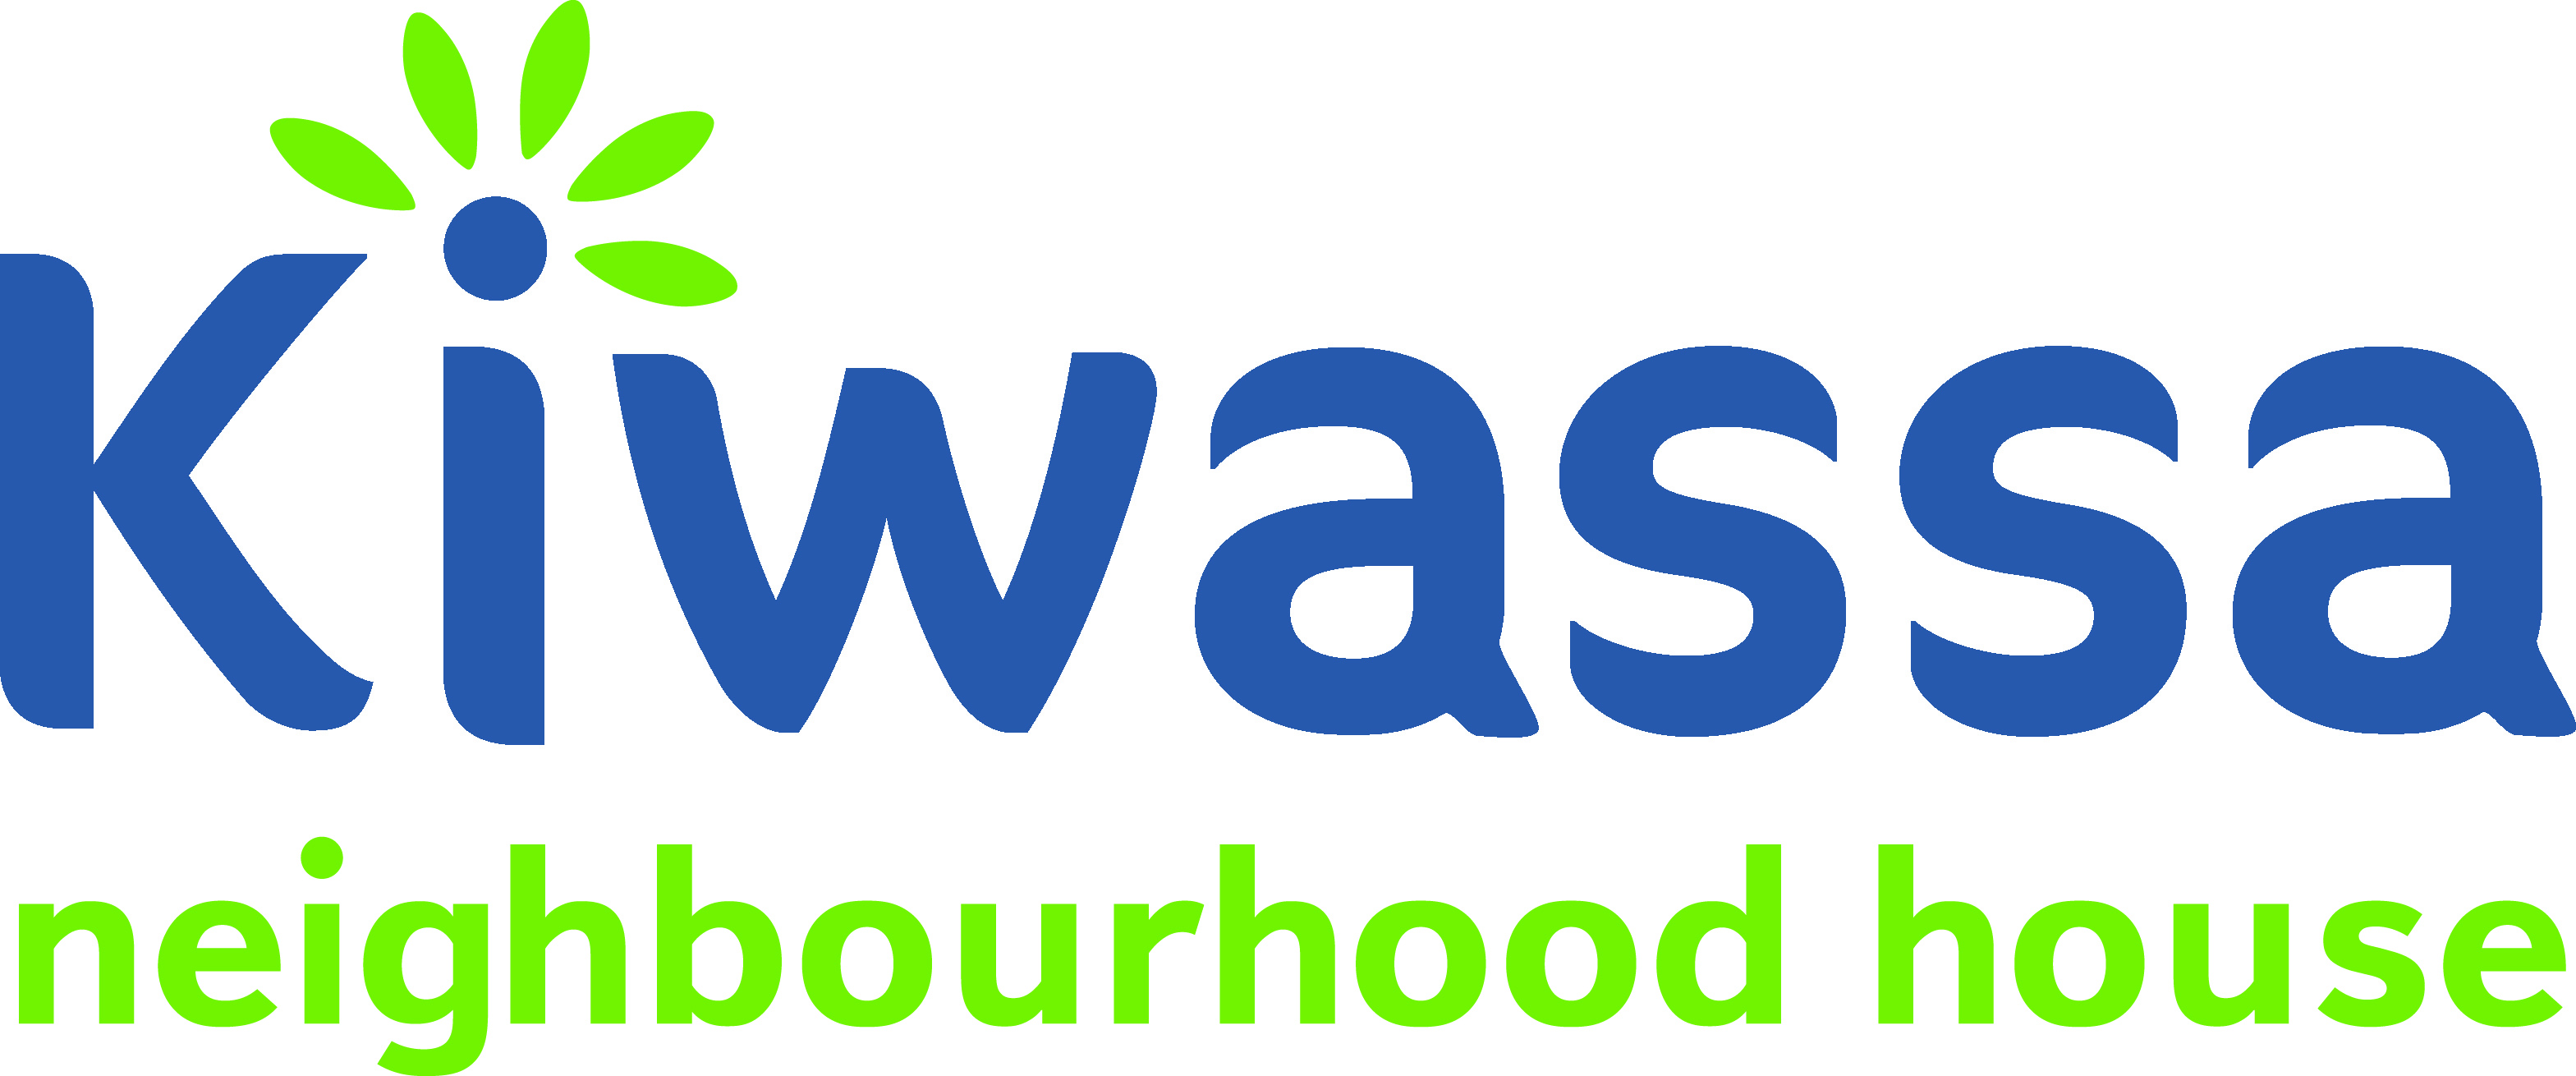 Kiwassa_logo_colour.jpg